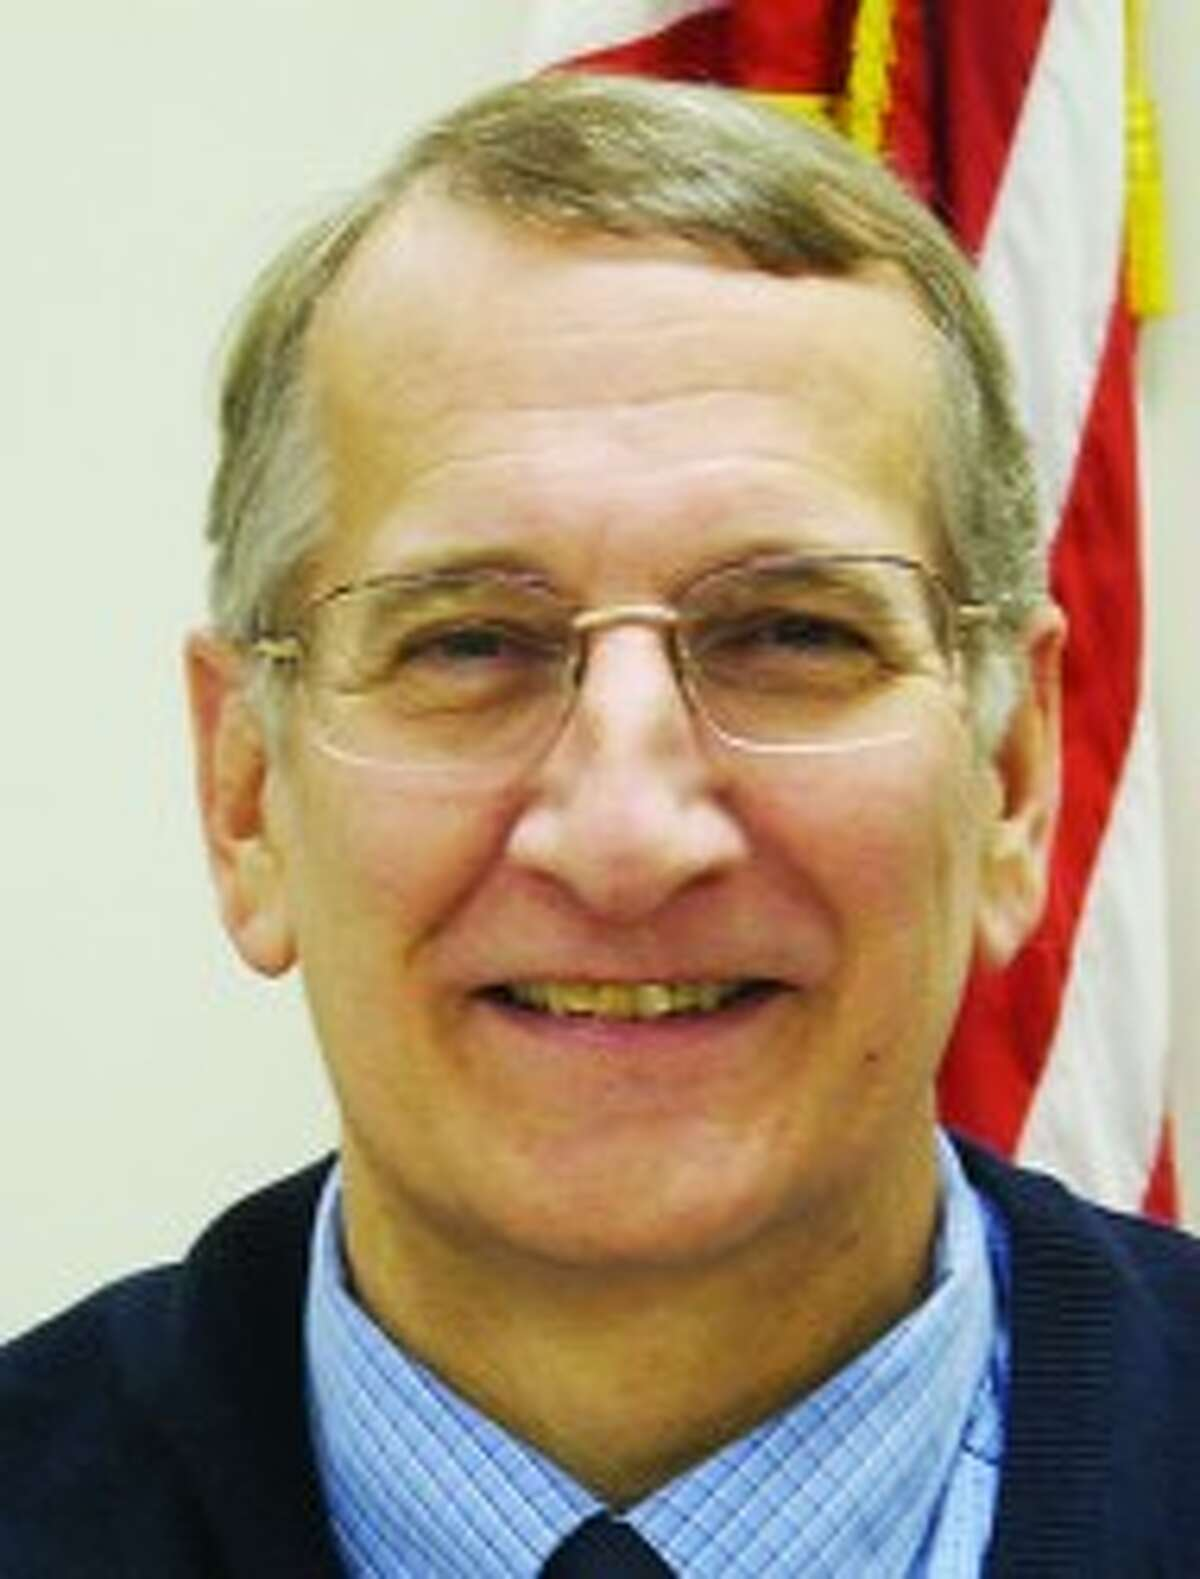 City Manager Steve Sobers